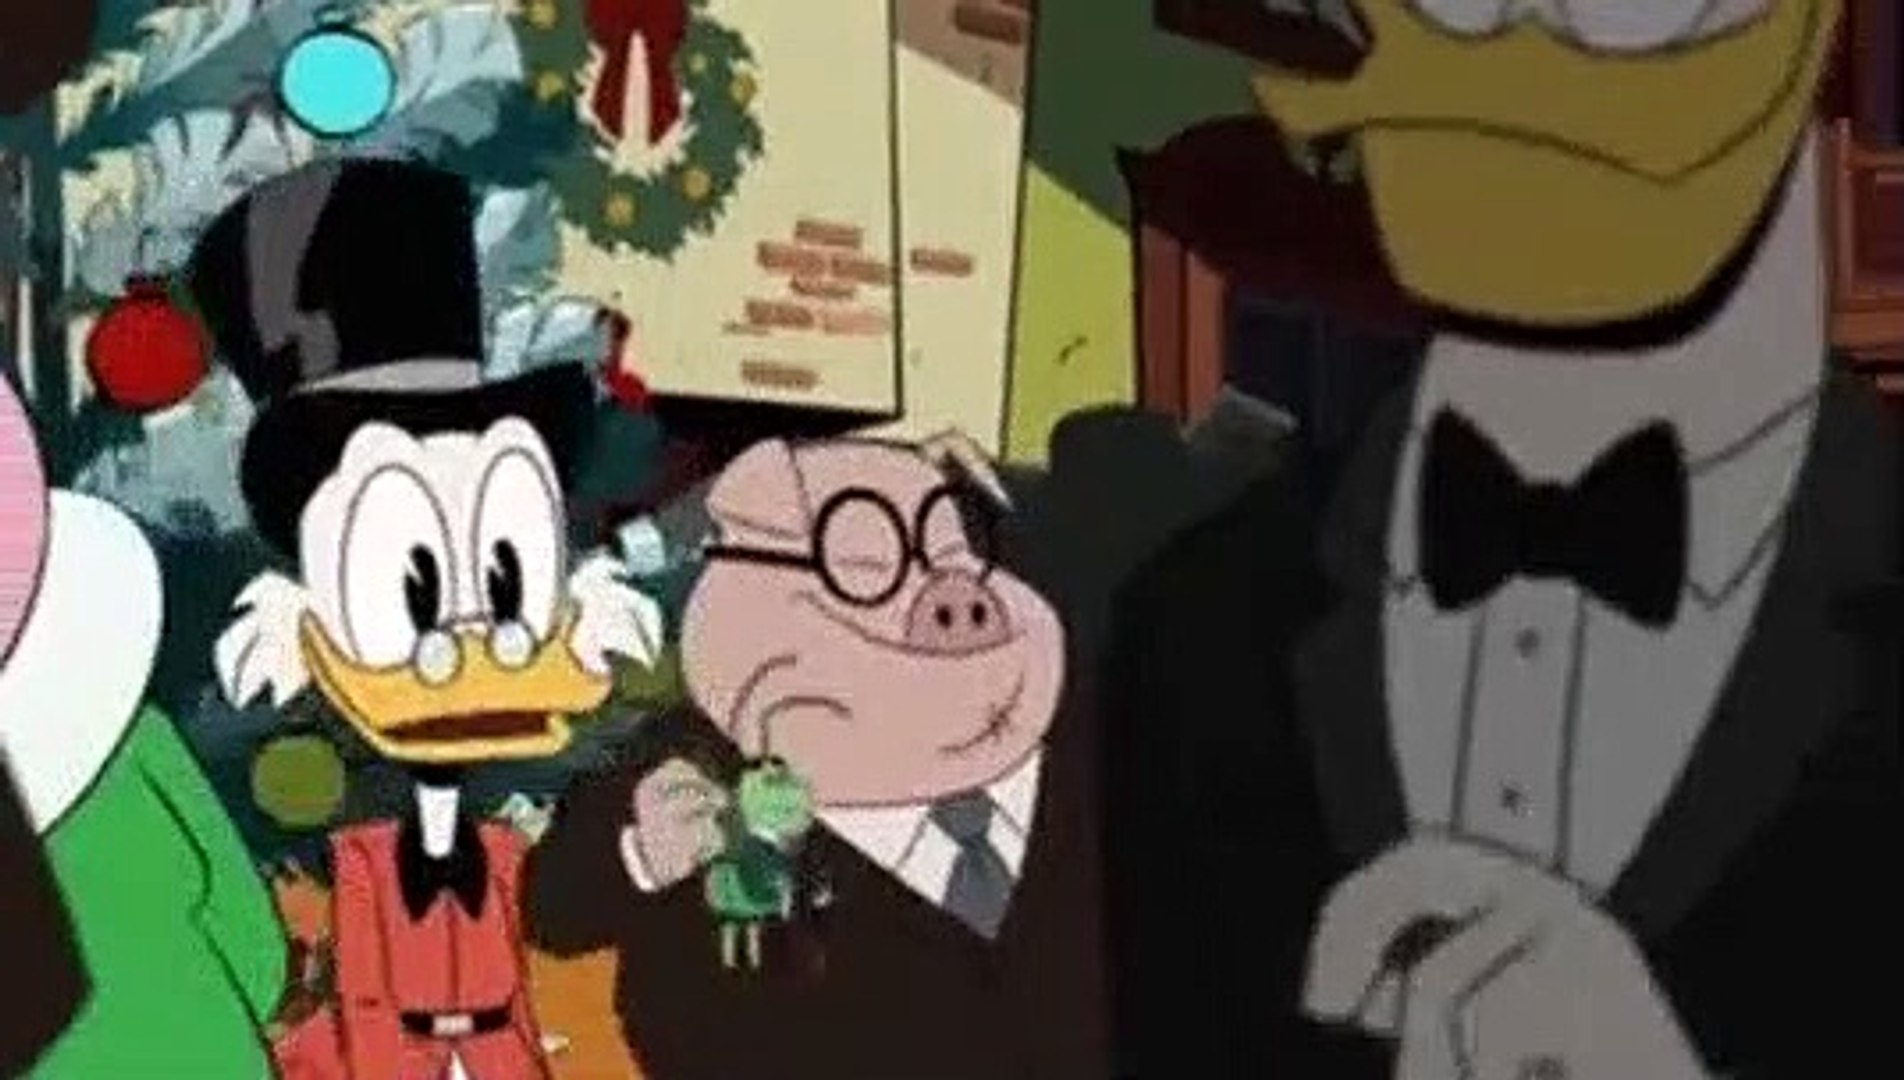 Ducktales Last Christmas.Ducktales S02e06 Last Christmas